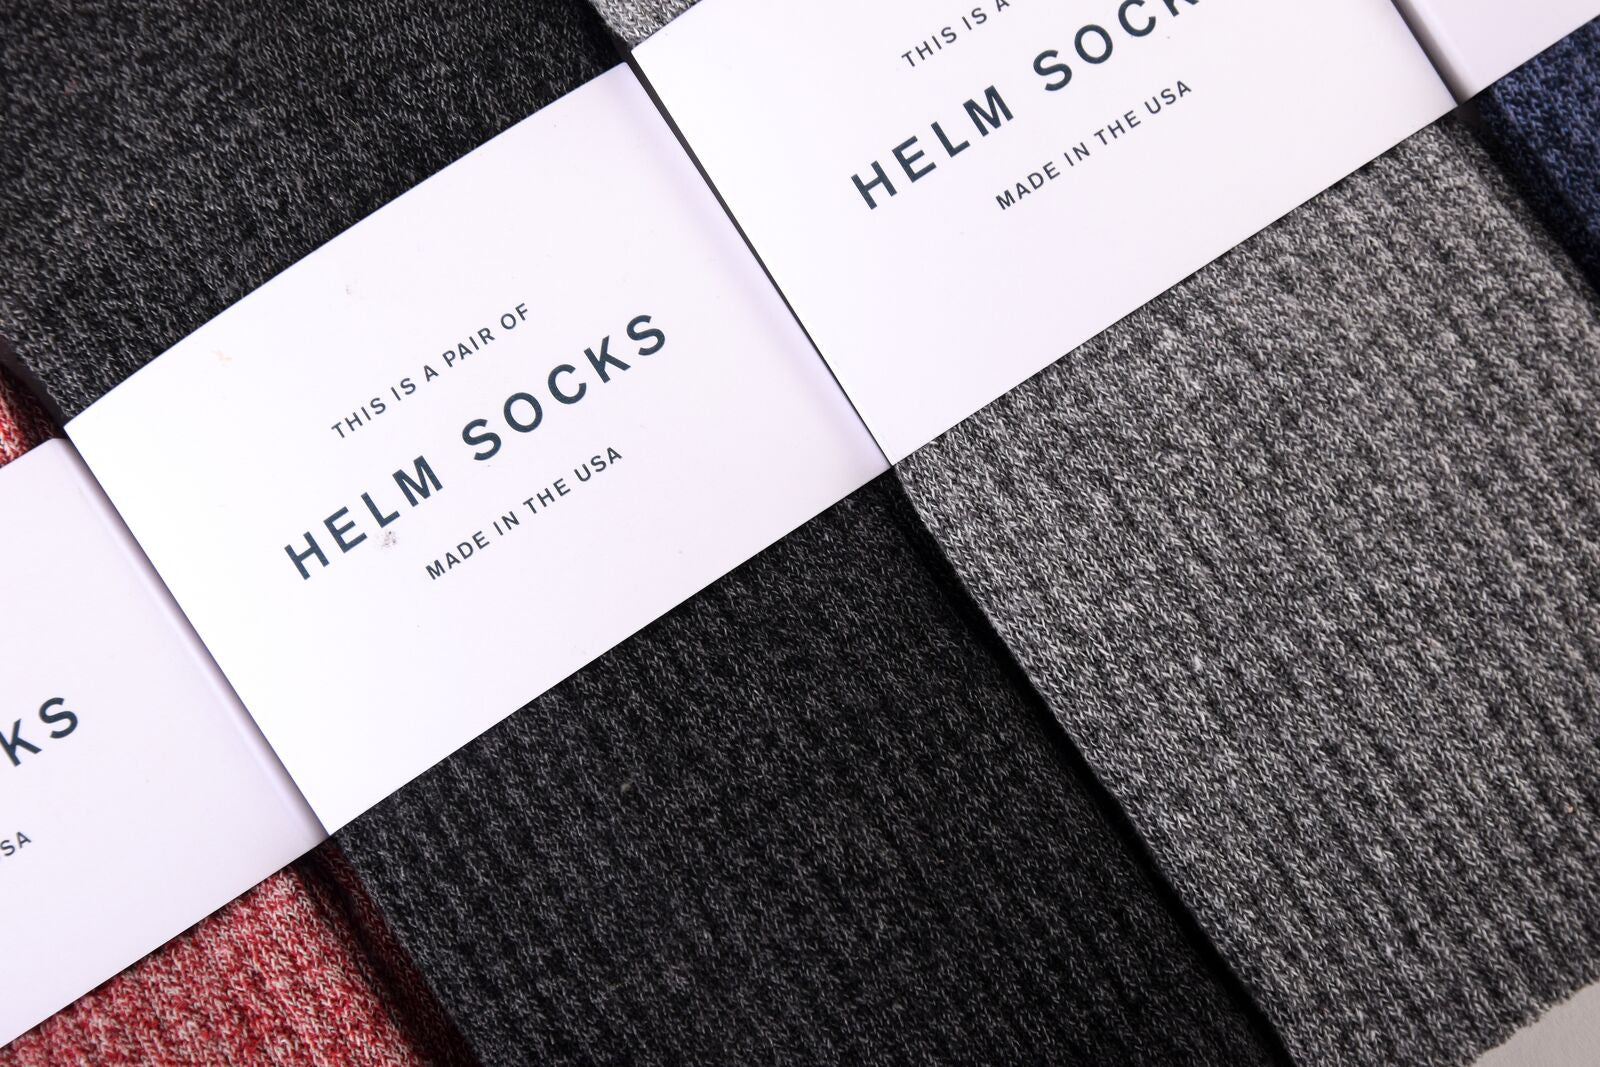 HELM Socks by HELM Boots